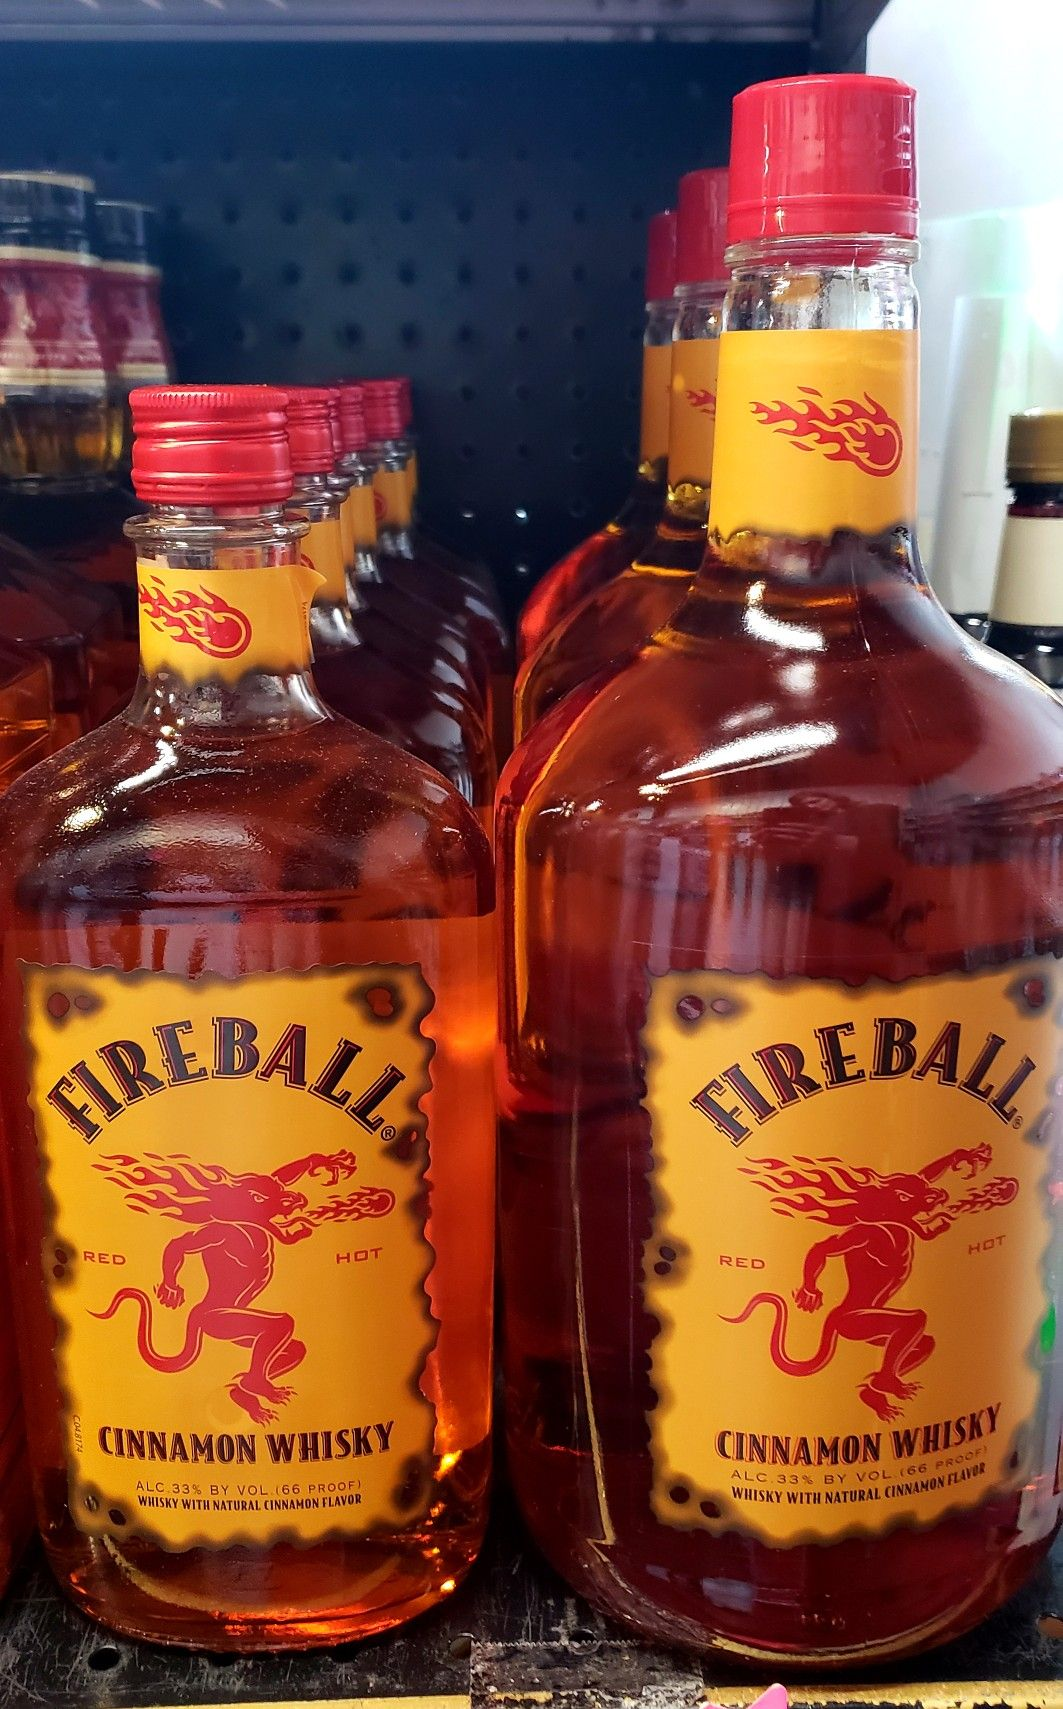 Fireball In 2020 Wine And Spirits Fireball Whisky